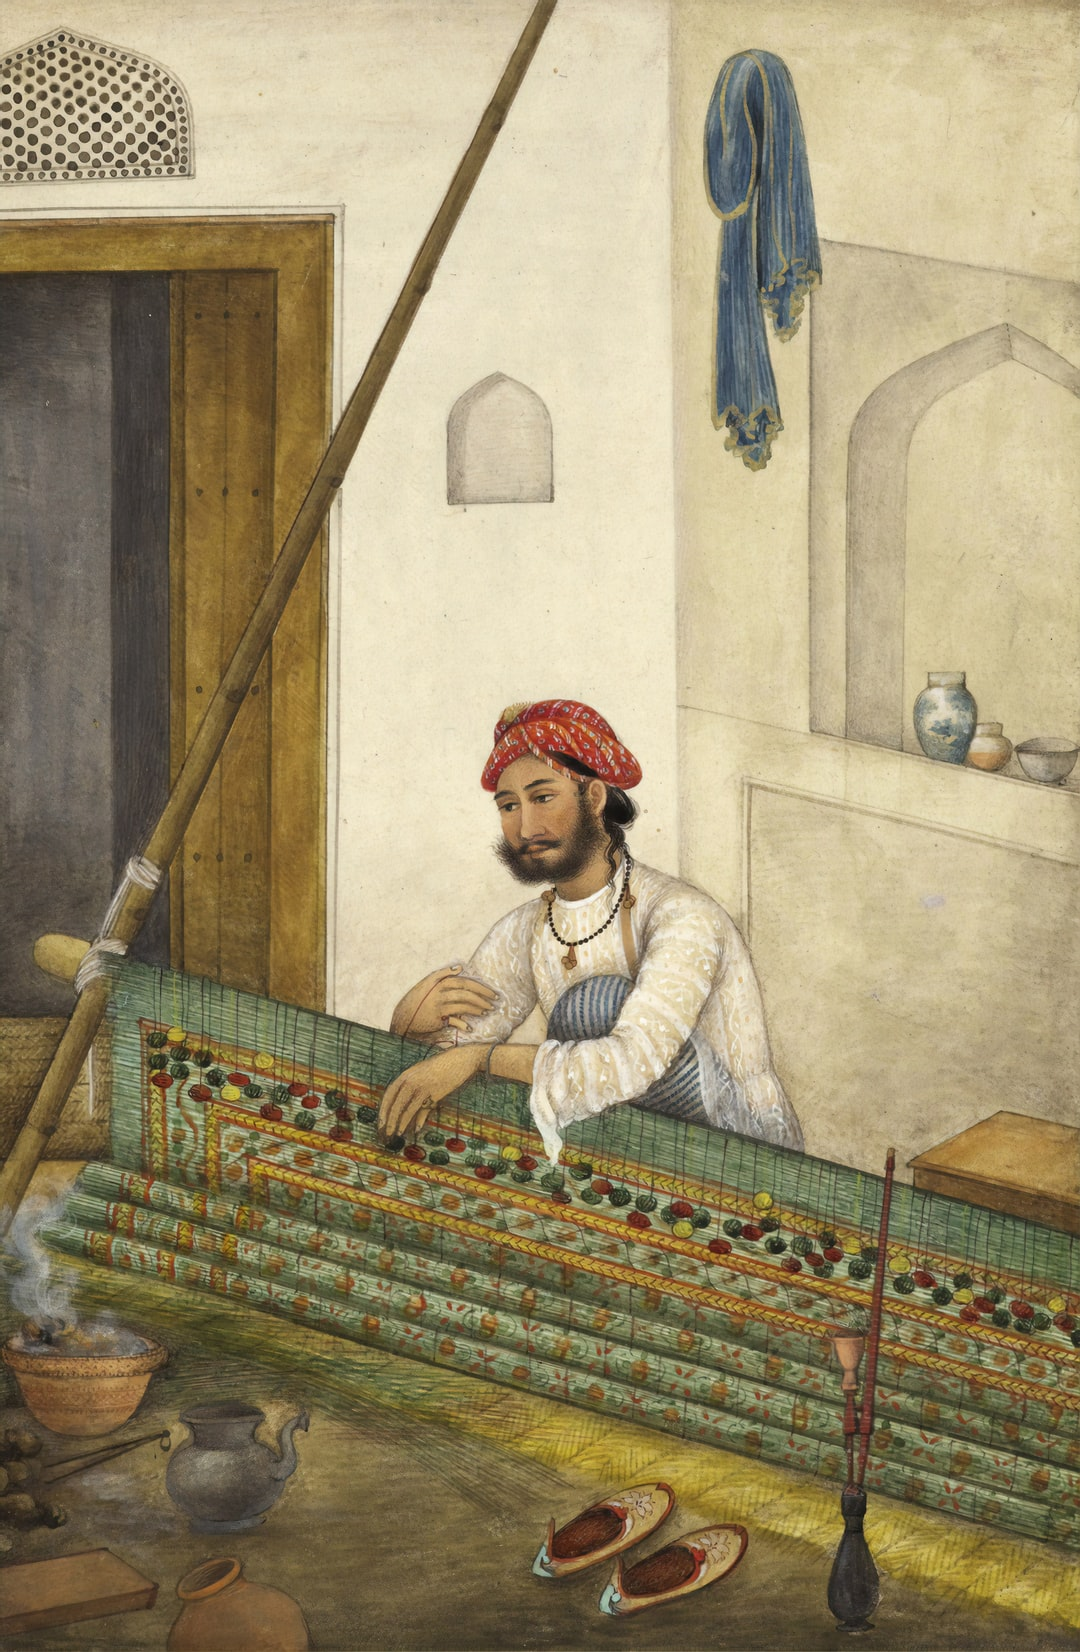 Tribes and Castes of India. A screen-maker, possibly of the Dumna caste. Circa 1825